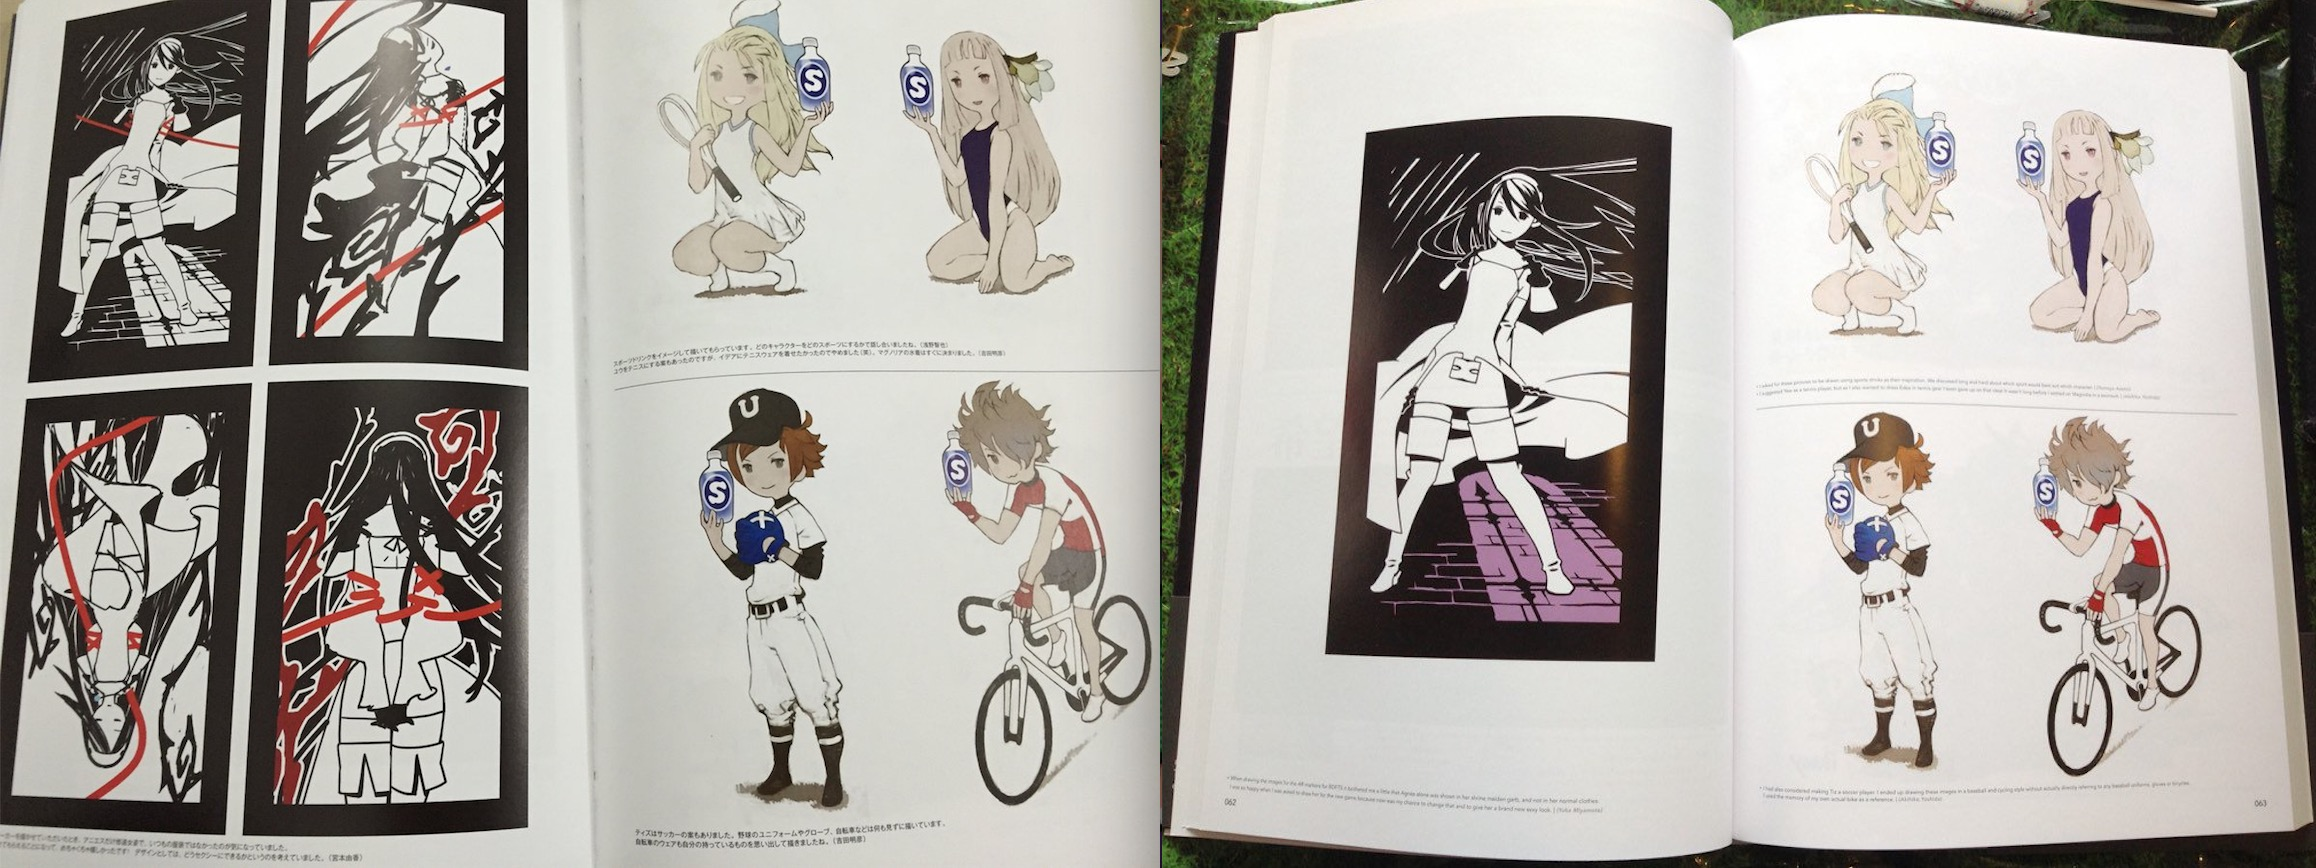 L'artbook japonais de Bravely Second est à gauche ; à droite, la version occidentale